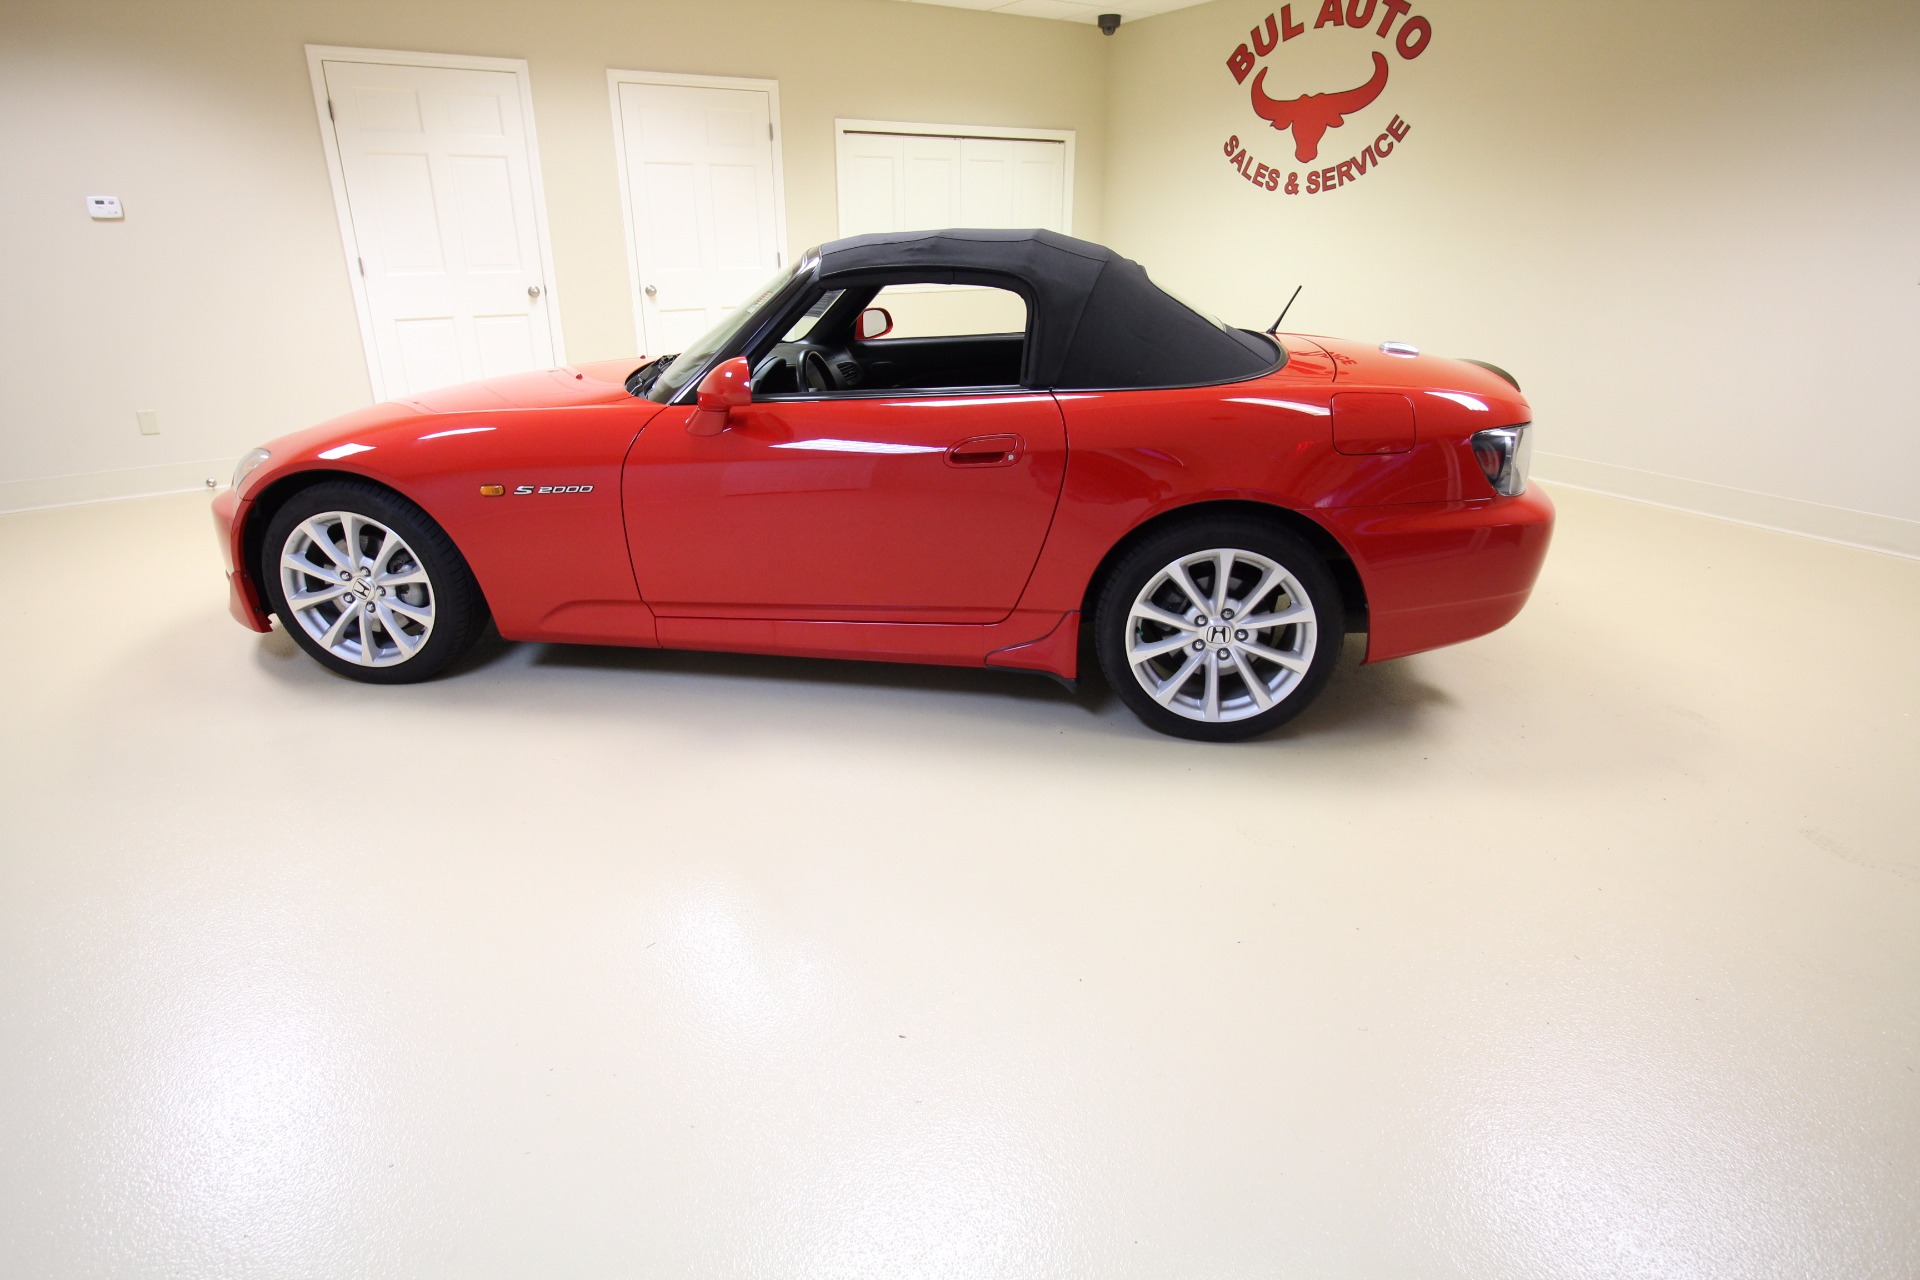 2007 honda s2000 roadster stock 17163 for sale near for Honda dealer albany